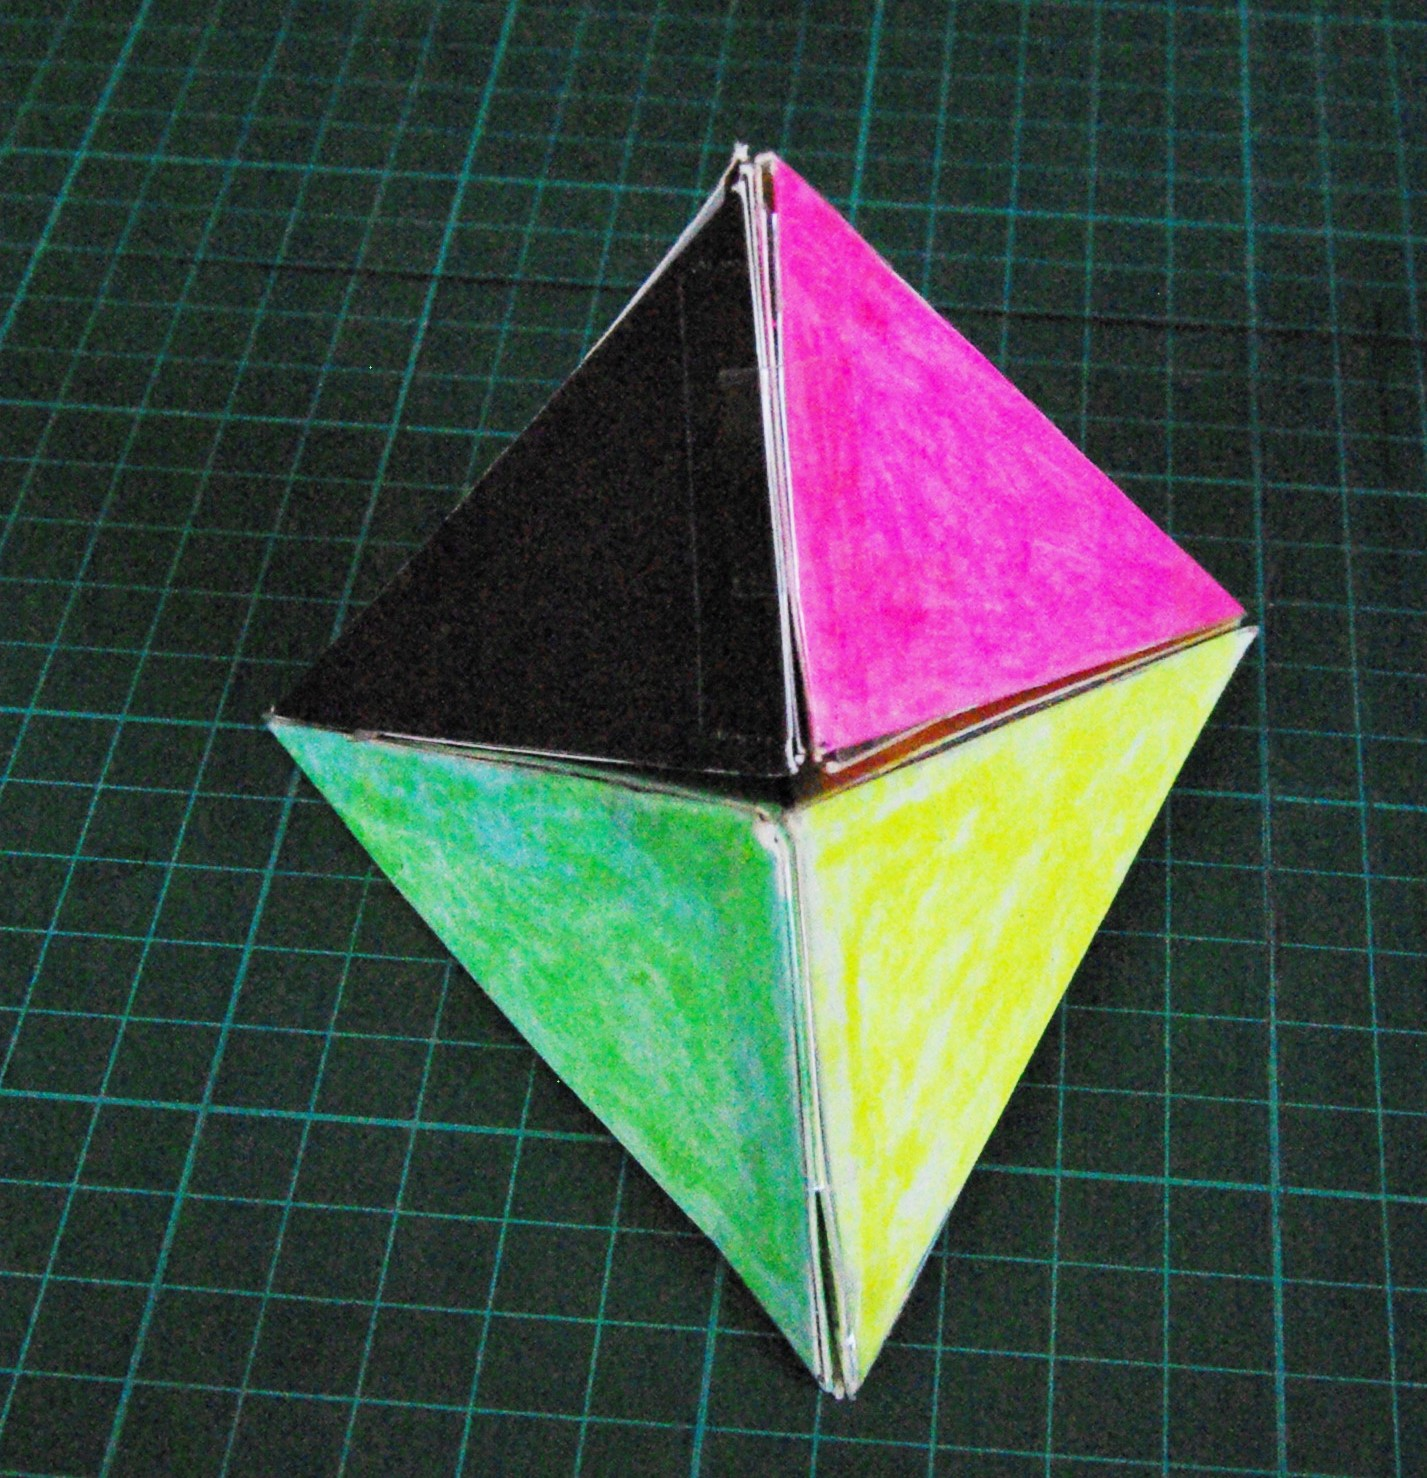 Picture of Second Way to Construct Four Congruent Non-regular Tetrahedra Part 2